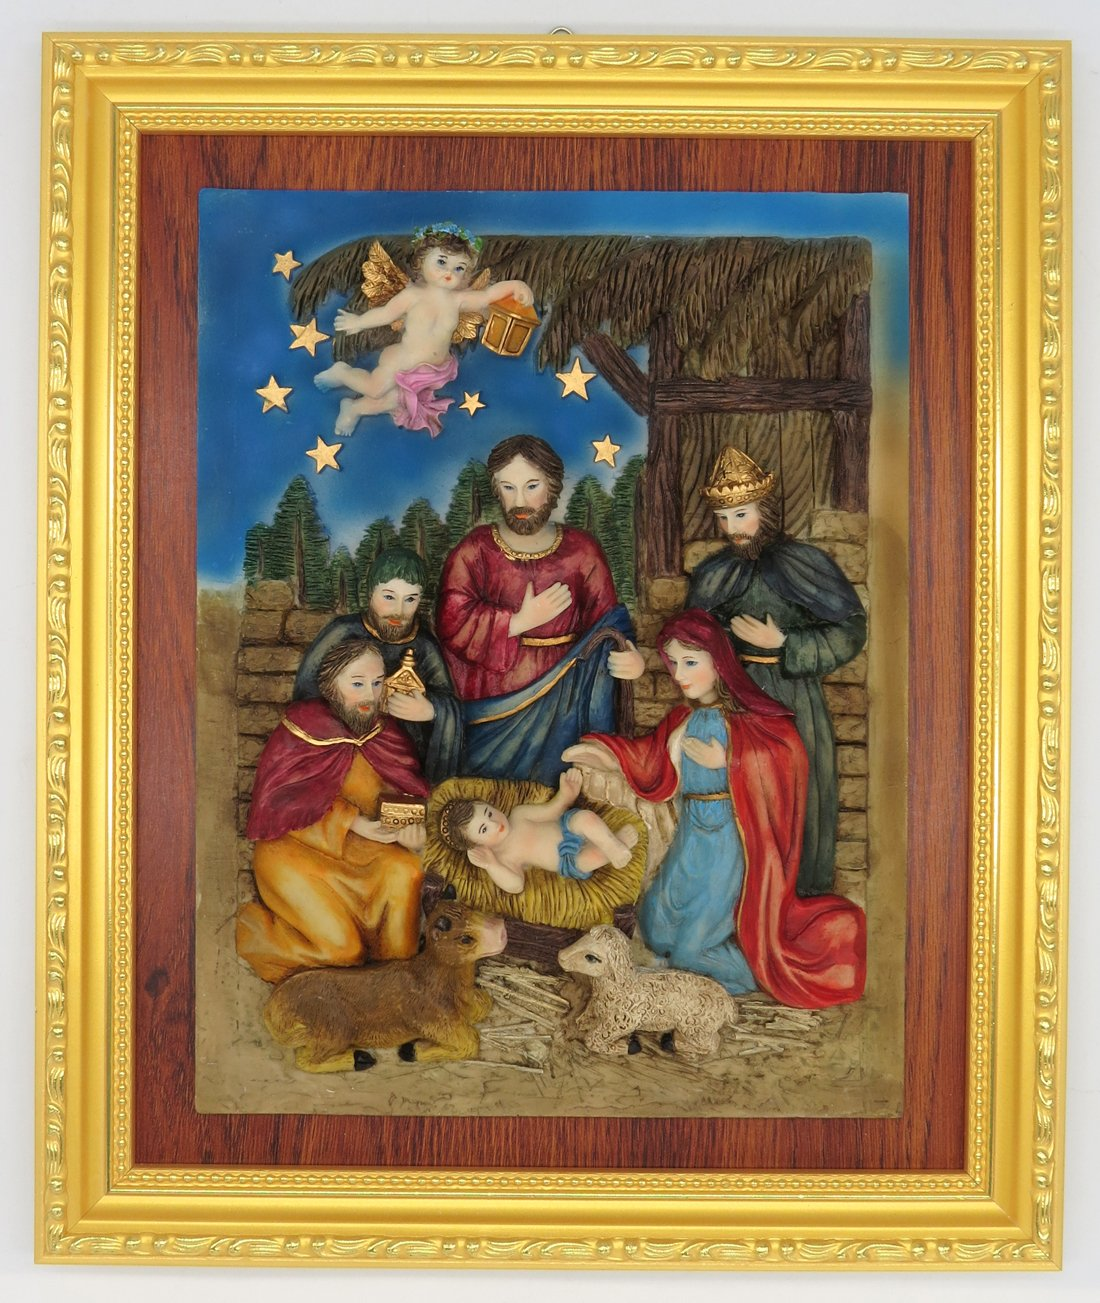 GGCI Hand Painted Resin Plate Décor Resin Cameo Sculpture Statue Figure and wooden frames Nativity